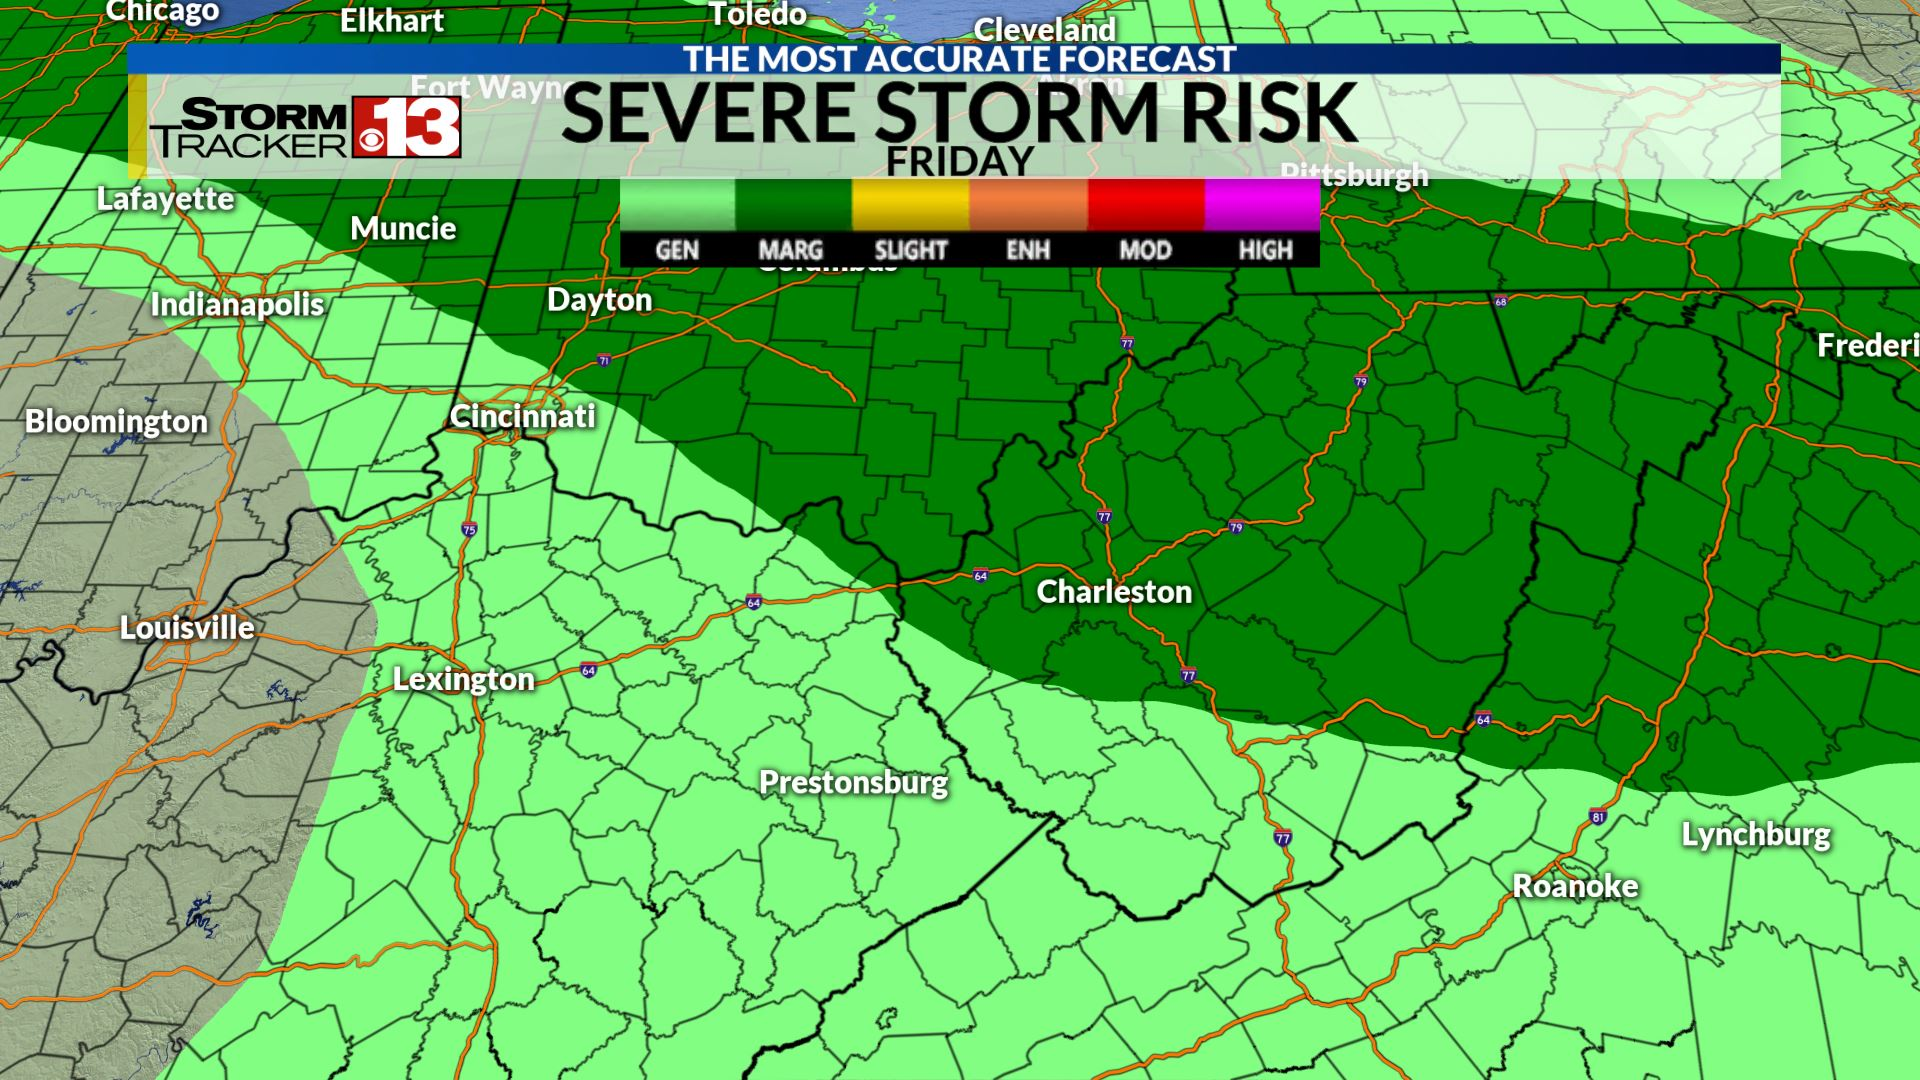 Storm Risk Outlook Friday May 17, 2019